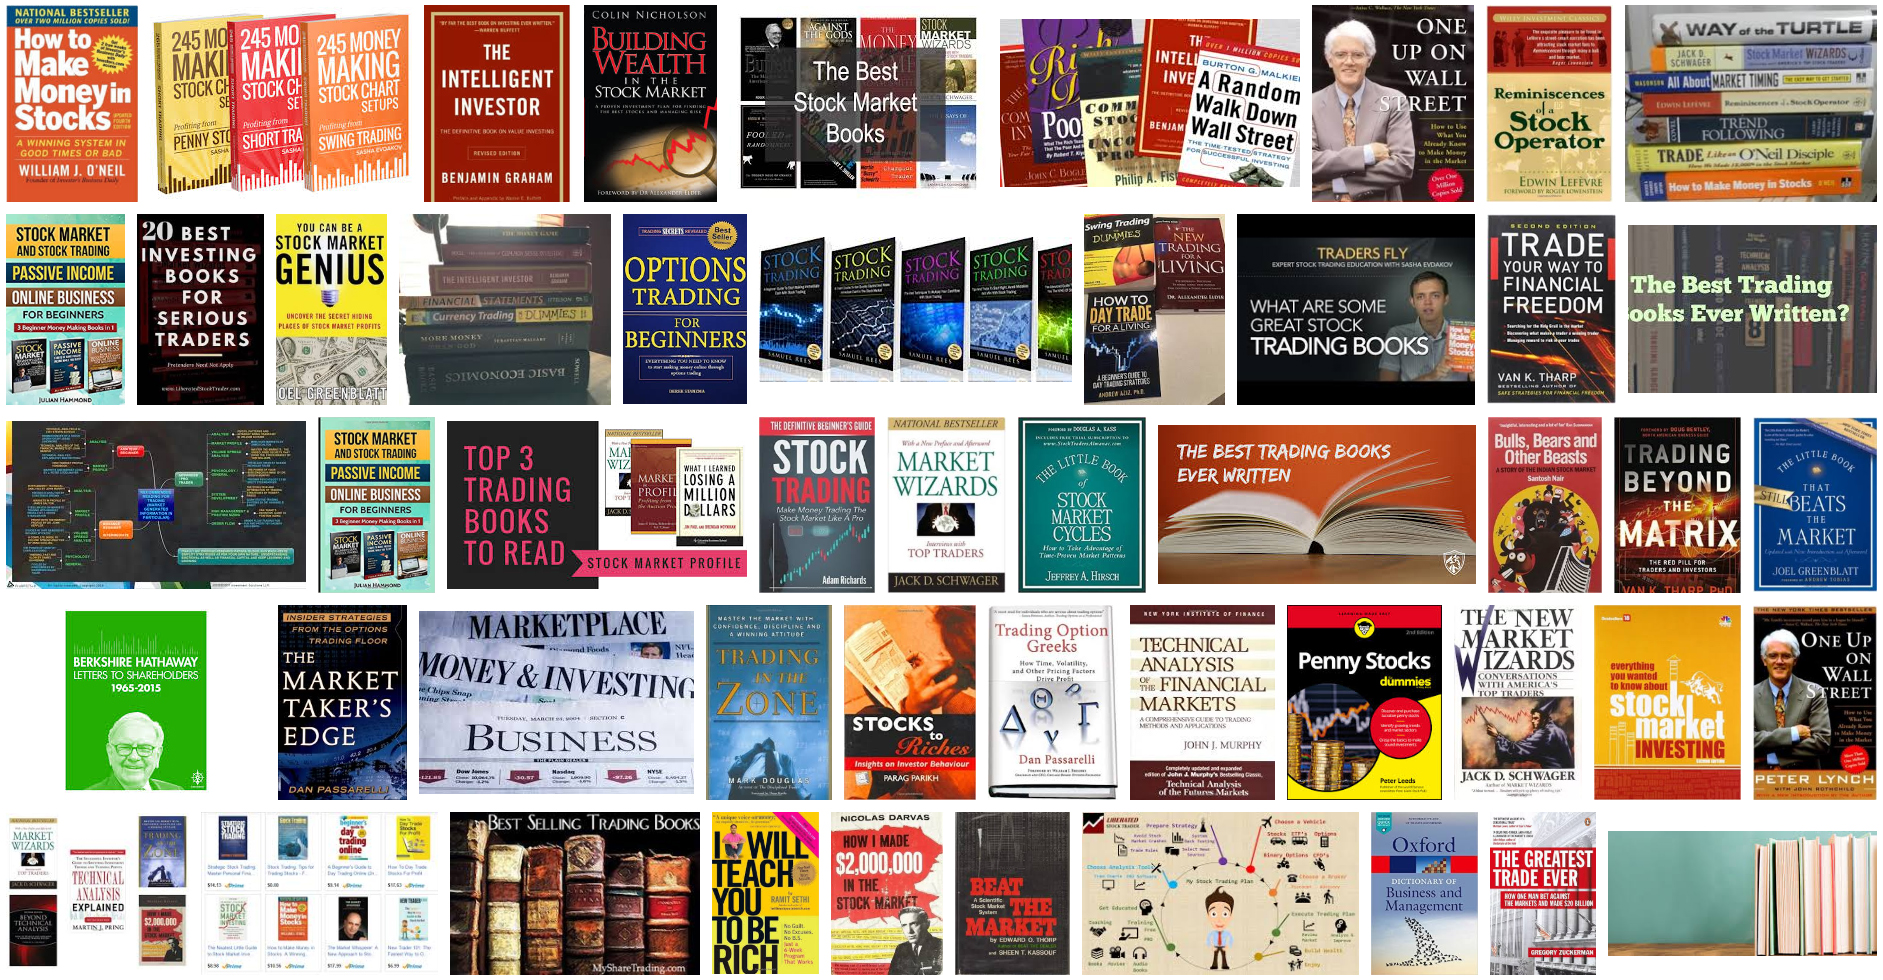 Best Stock Trading Books